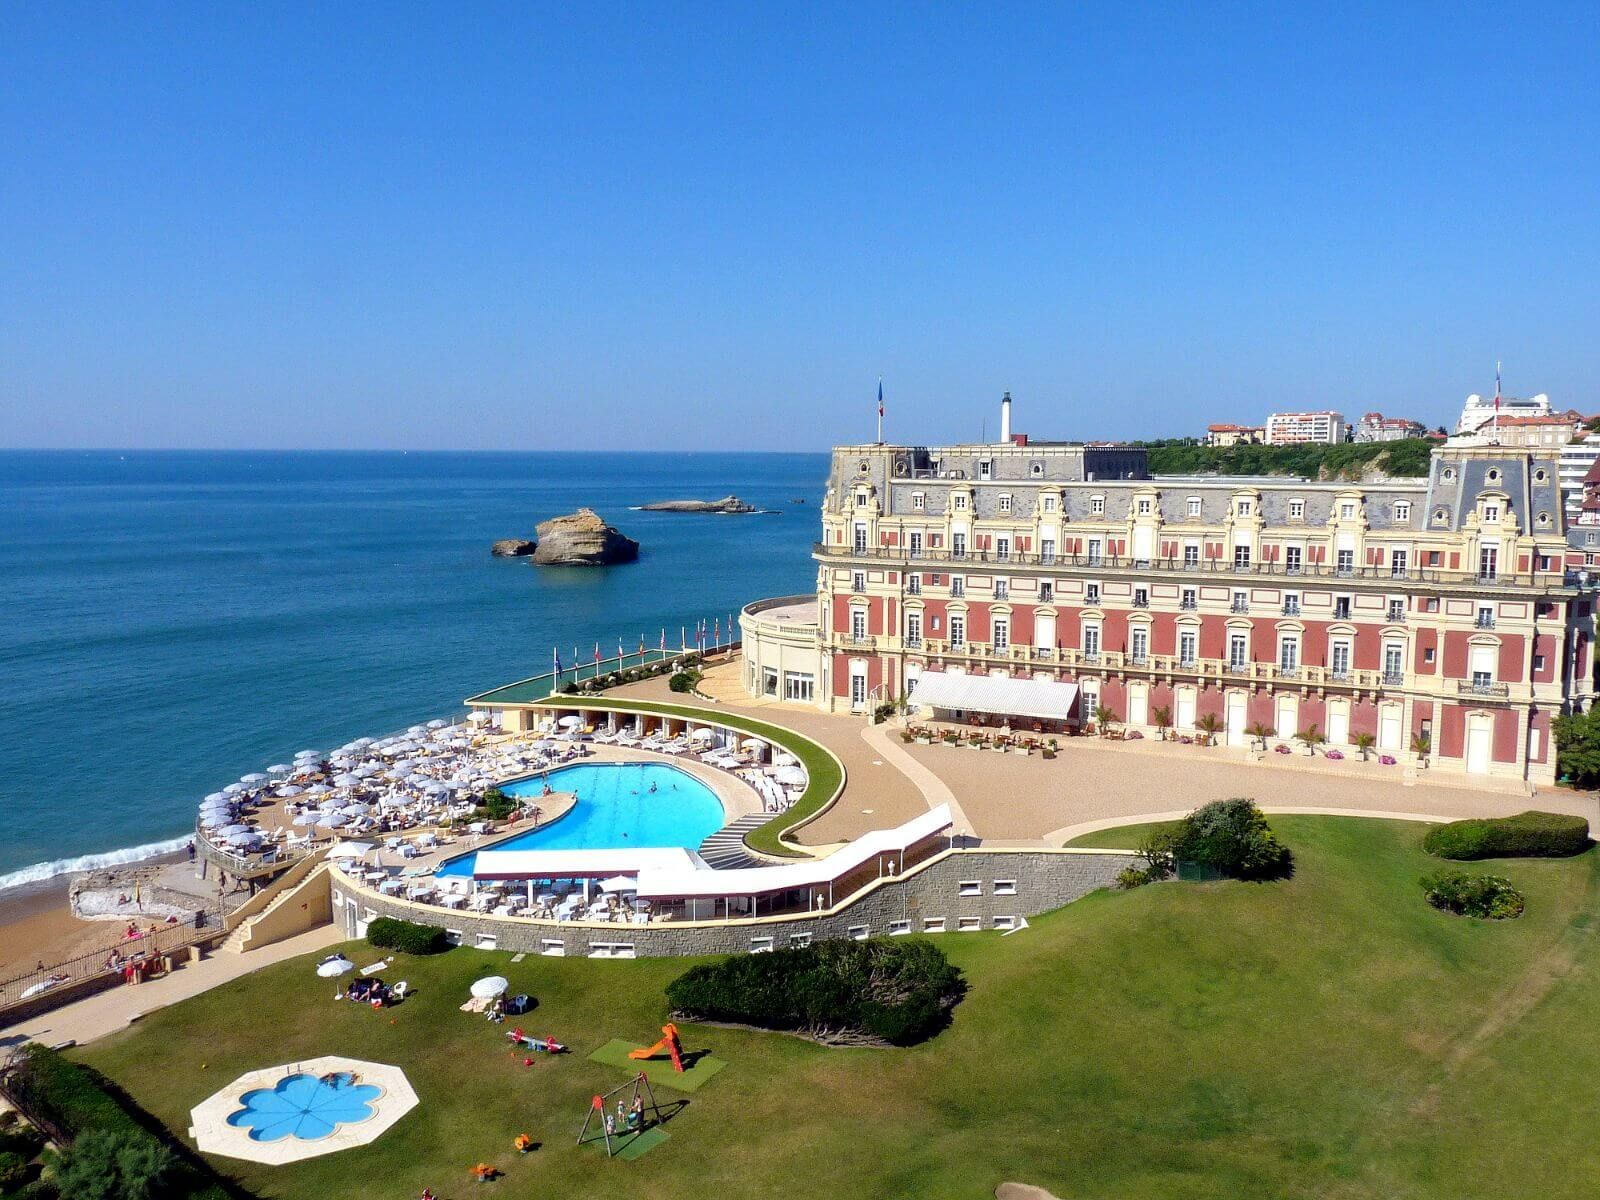 #Hotel du Palais #France #Biarritz #Hotels #travel #travelblogger #travelgram #travelguide #travels #travelling #travelblog #traveladdict #traveladikkt #beautifuldestinations #bucketlist #luxury #luxurylifestyle #luxurytravel #luxurydestinations #lifestyle #lifestyleblogger #beautifulplaces #beautifulplace #beautiful #beautifuldestination